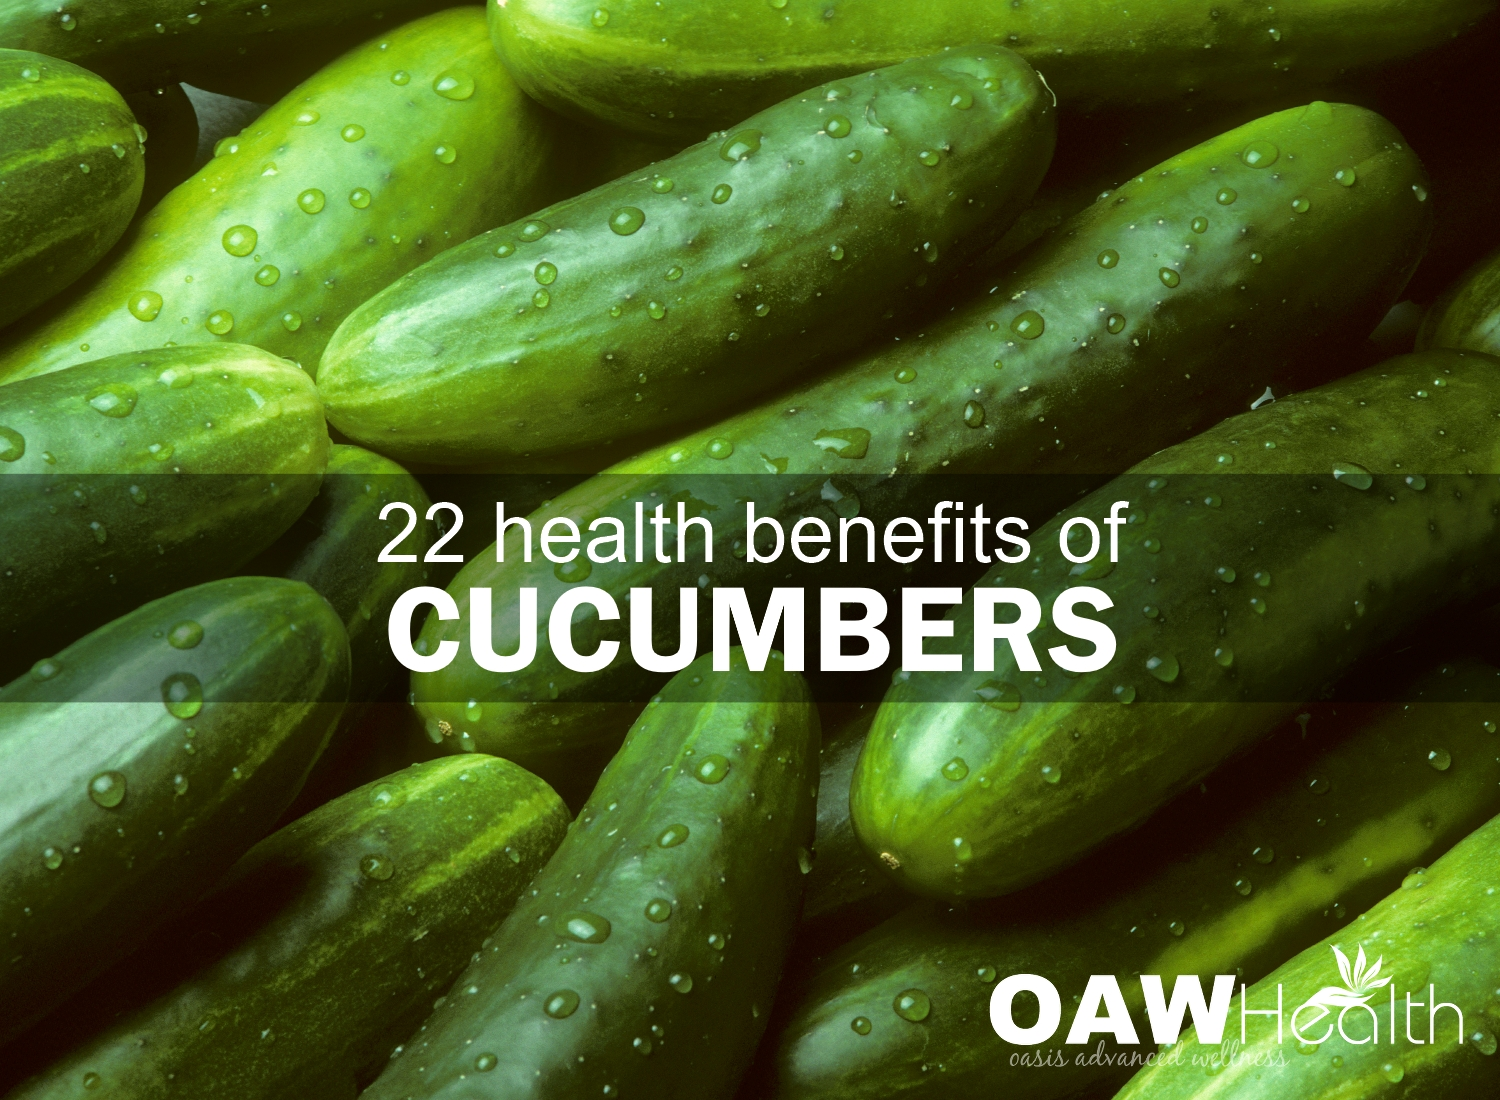 22 Health Benefits of Cucumbers